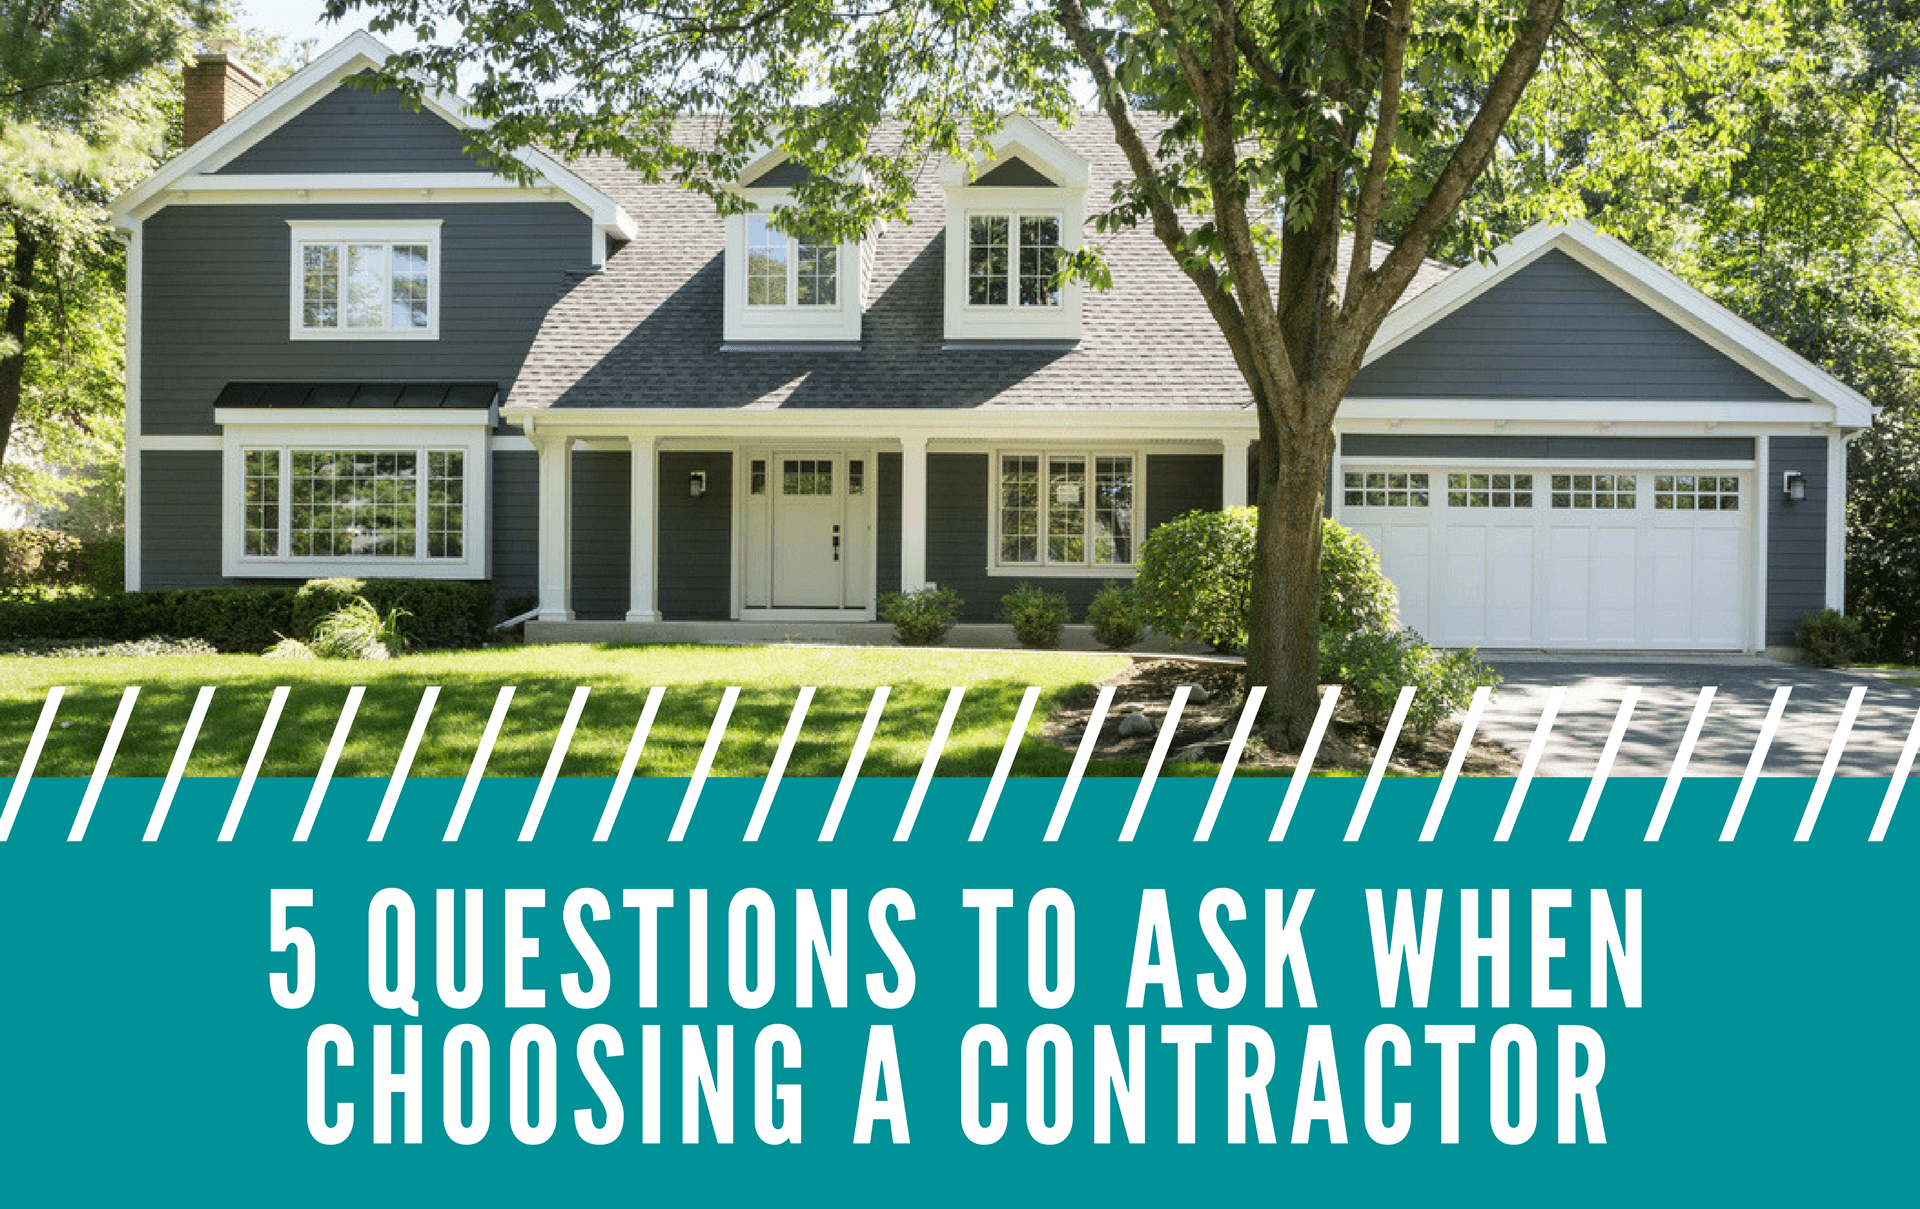 What To Ask Your Contractor: 5 QUESTIONS TO ASK WHEN CHOOSING A CONTRACTOR